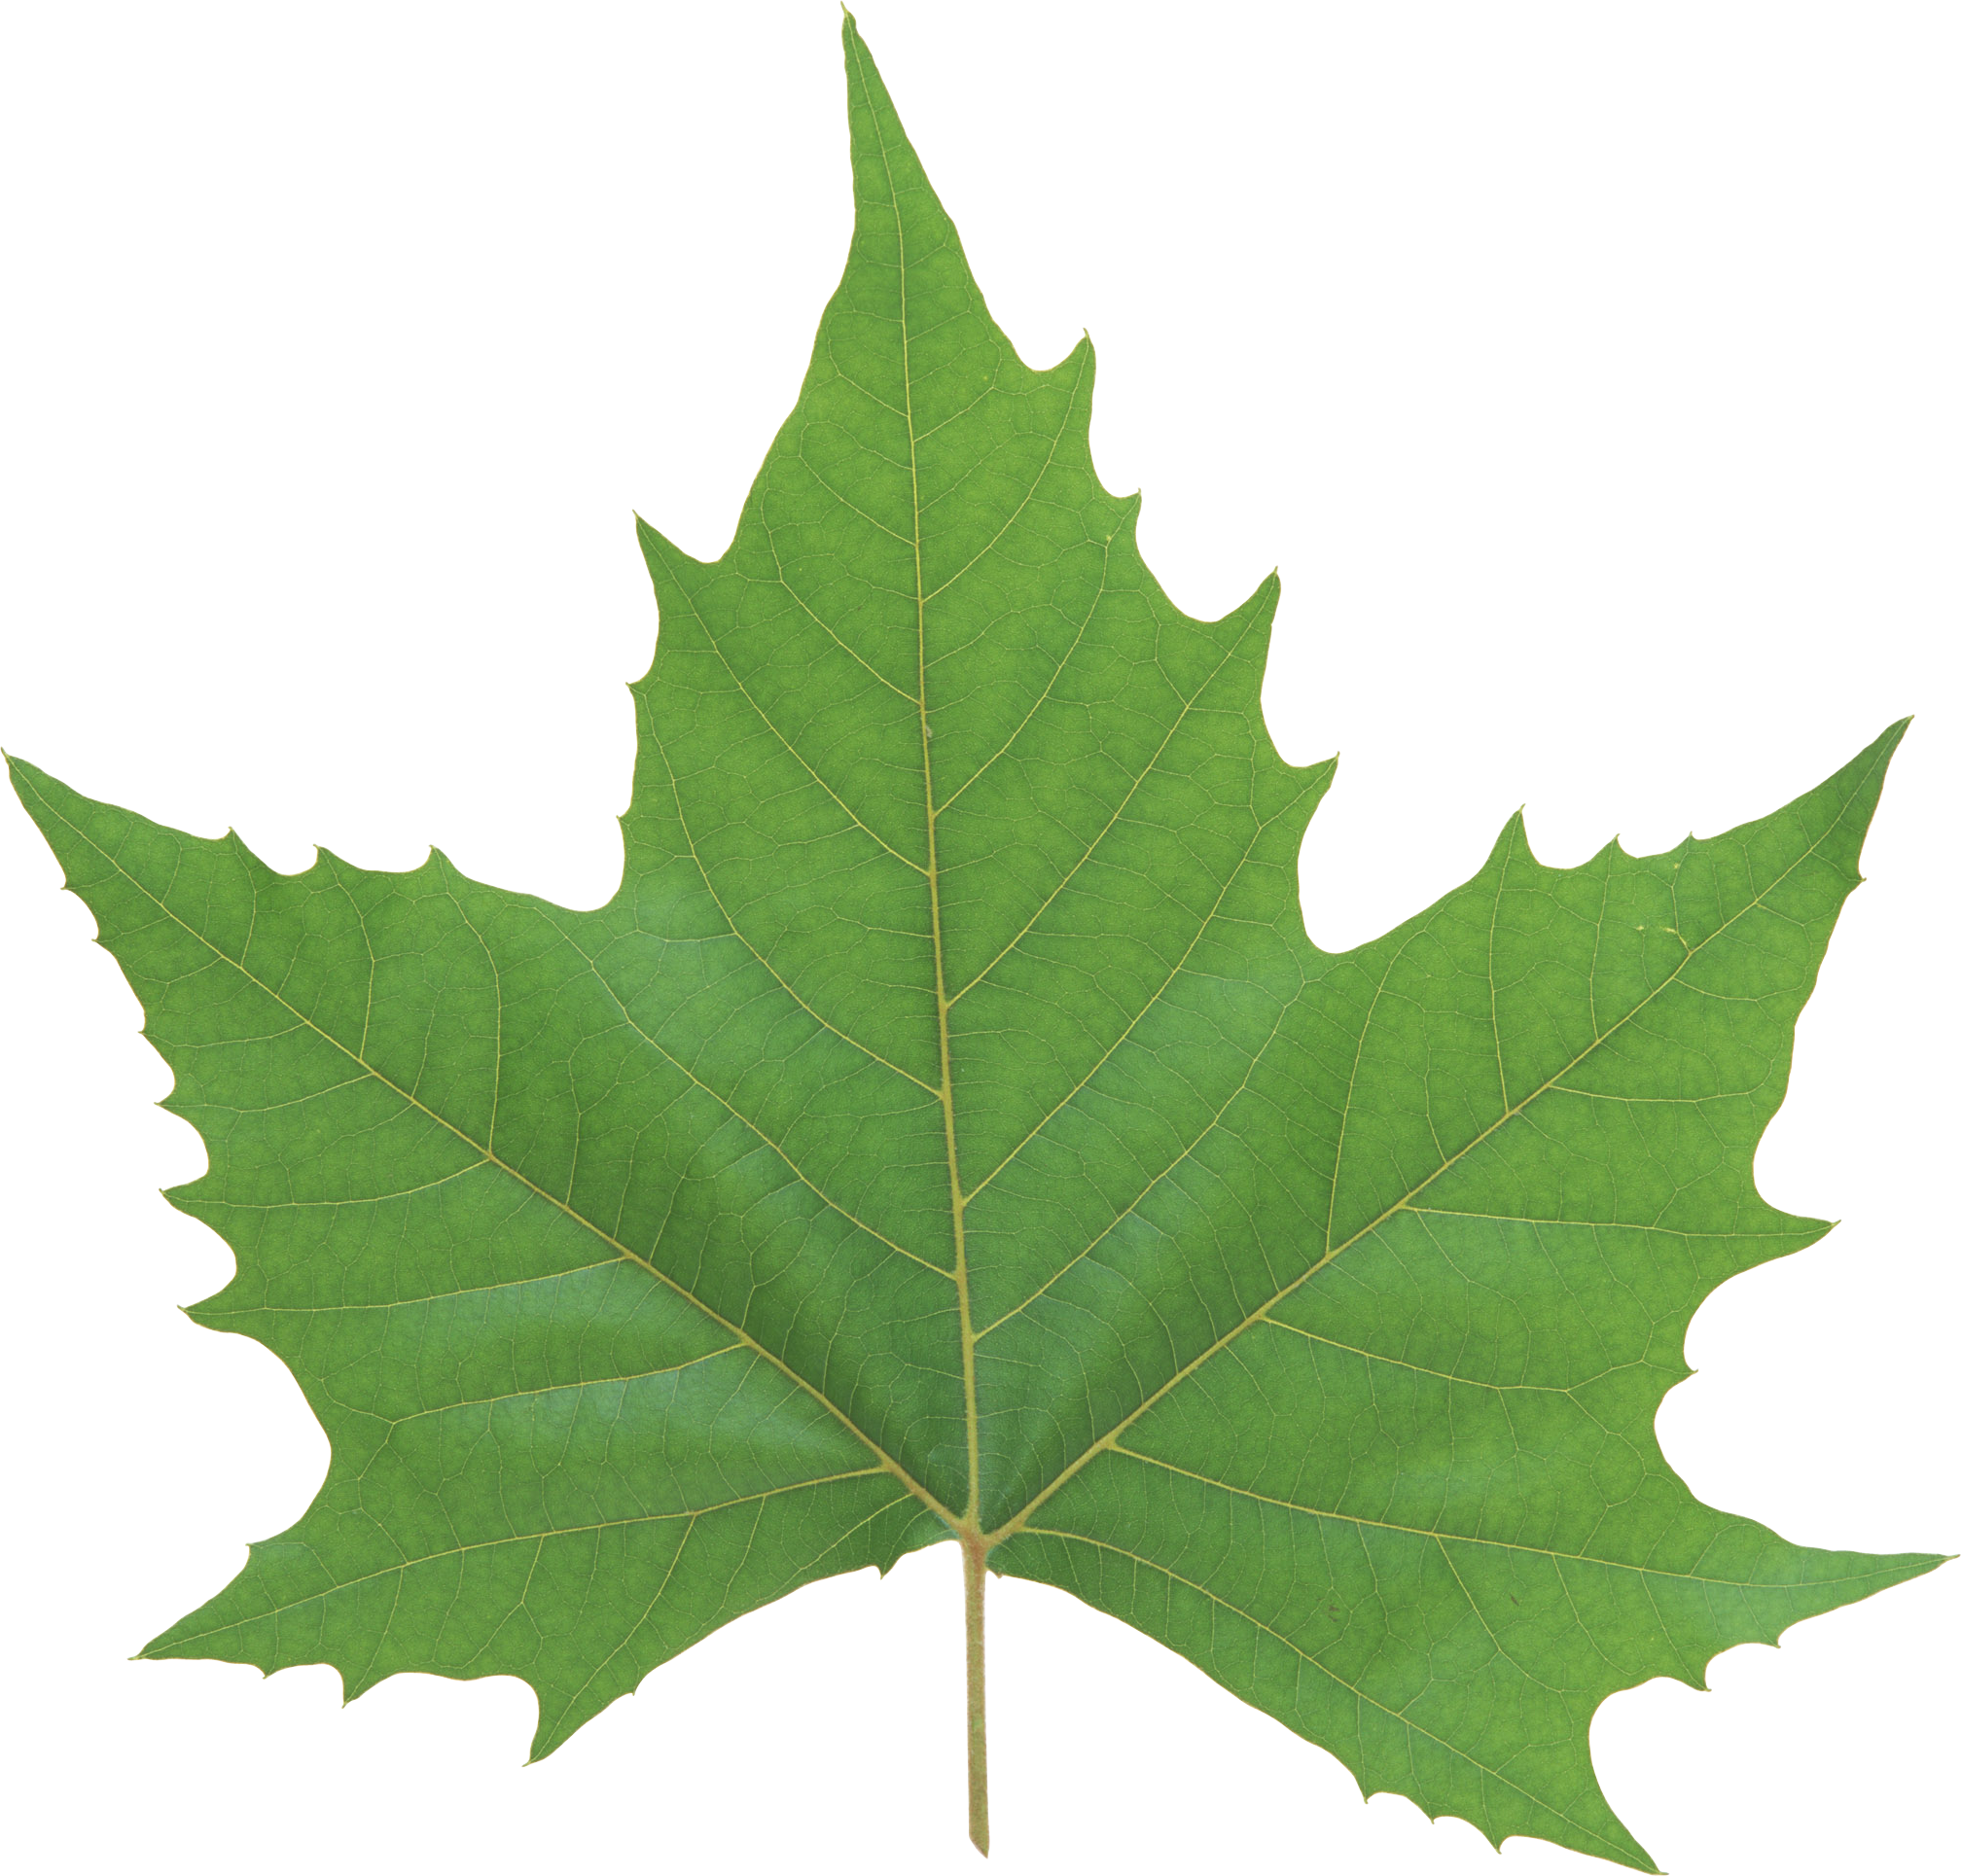 Leaf texture png. Green leaves image purepng